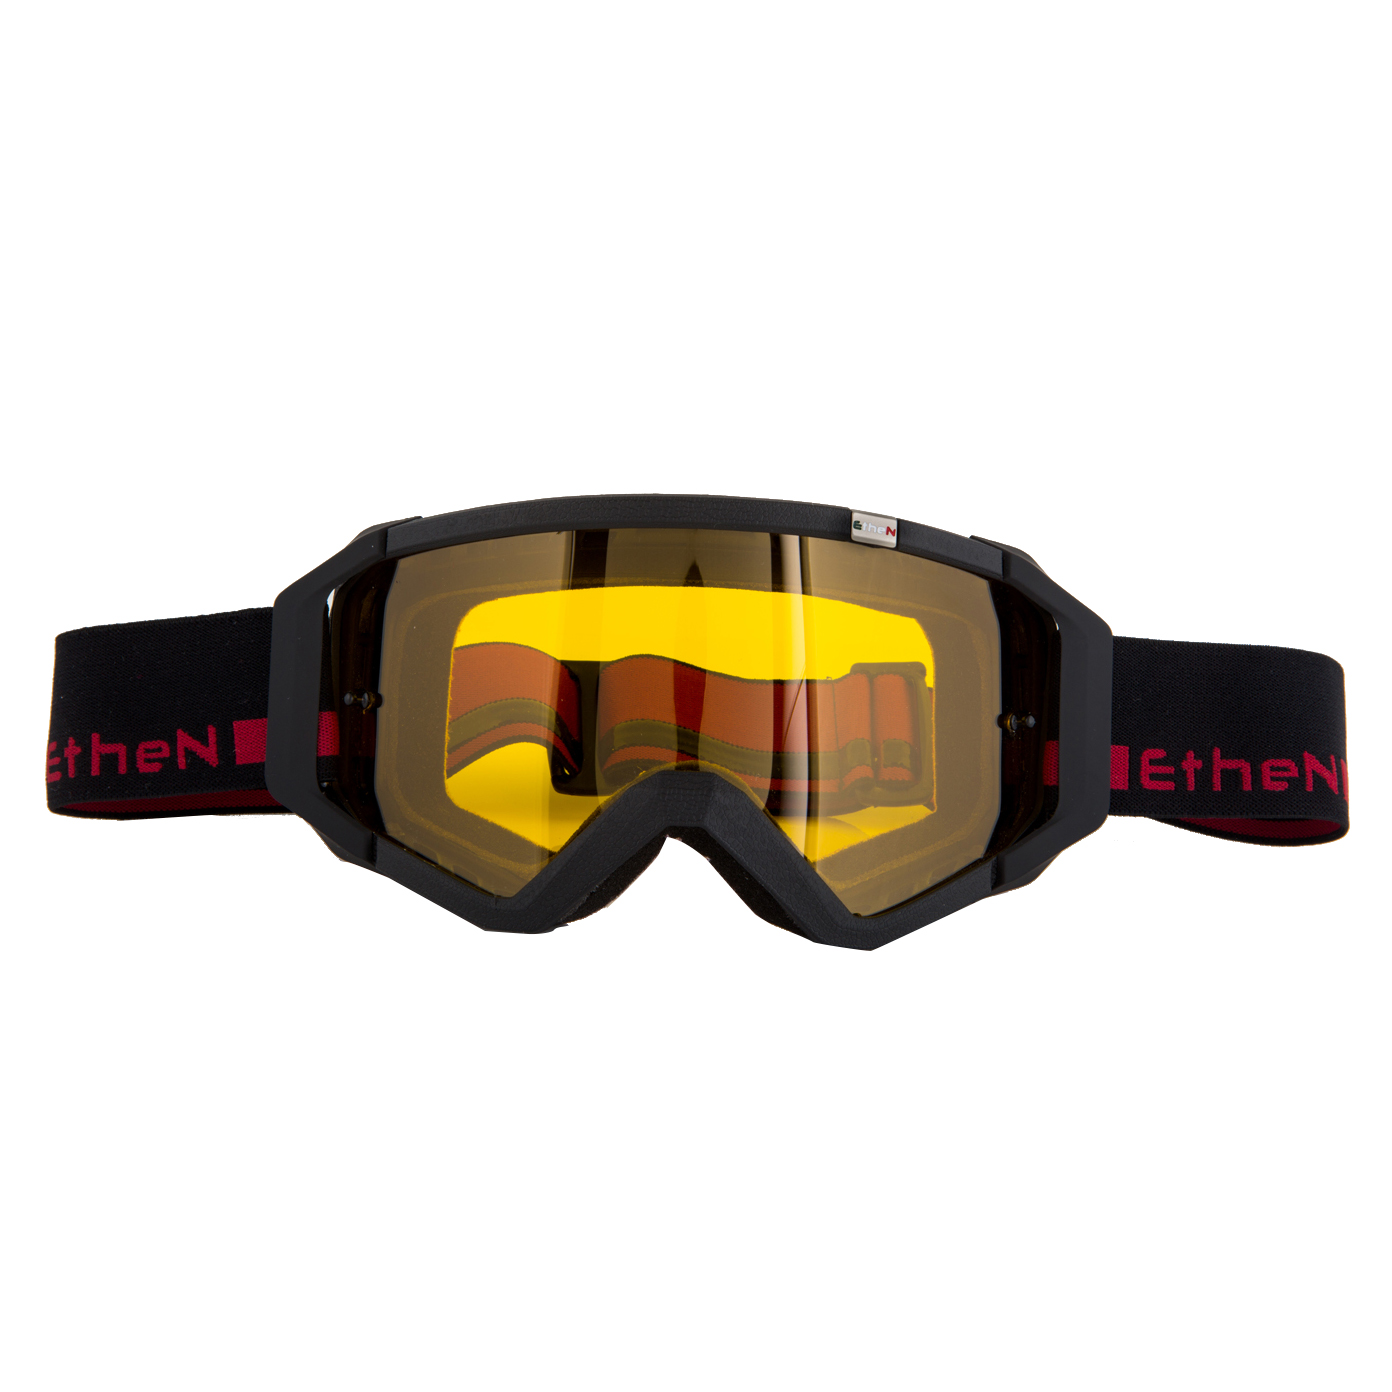 Ethen Vintage MX05 Goggle - Bordeaux